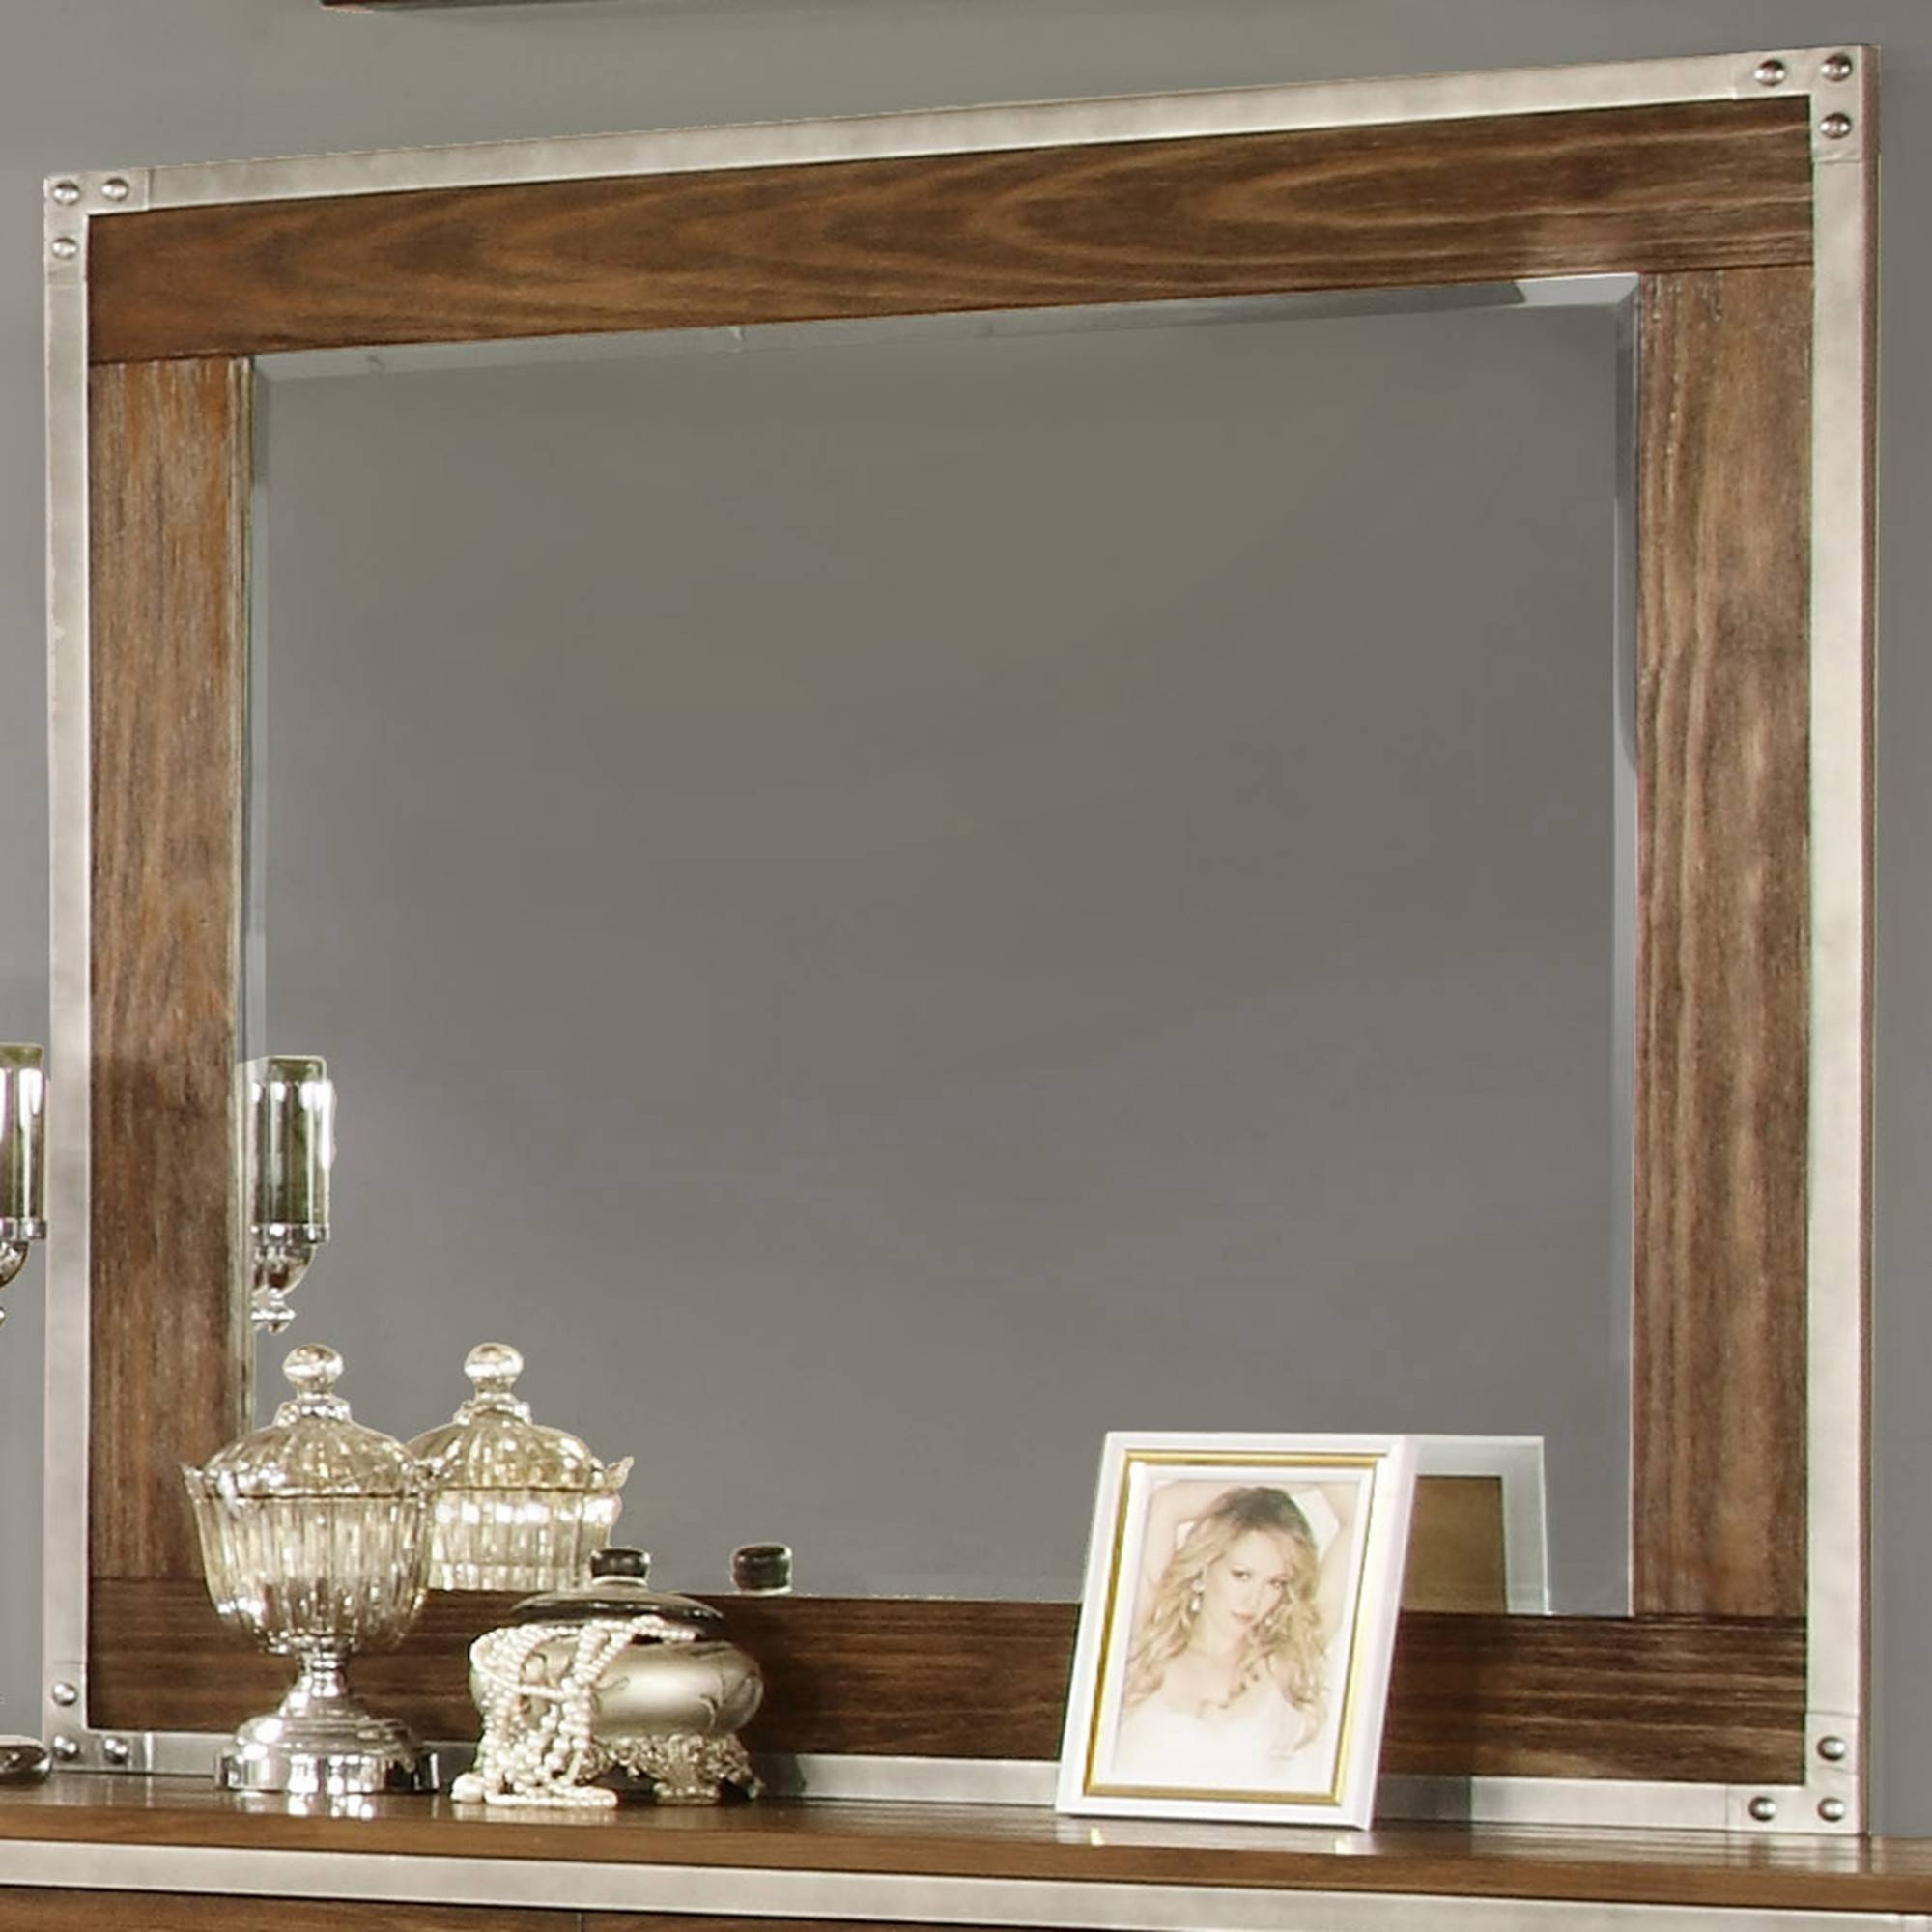 Wyatt Dresser Mirror In Rustic Oak - Night Tables, Dresser/mirrors with regard to Rustic Oak Mirrors (Image 25 of 25)